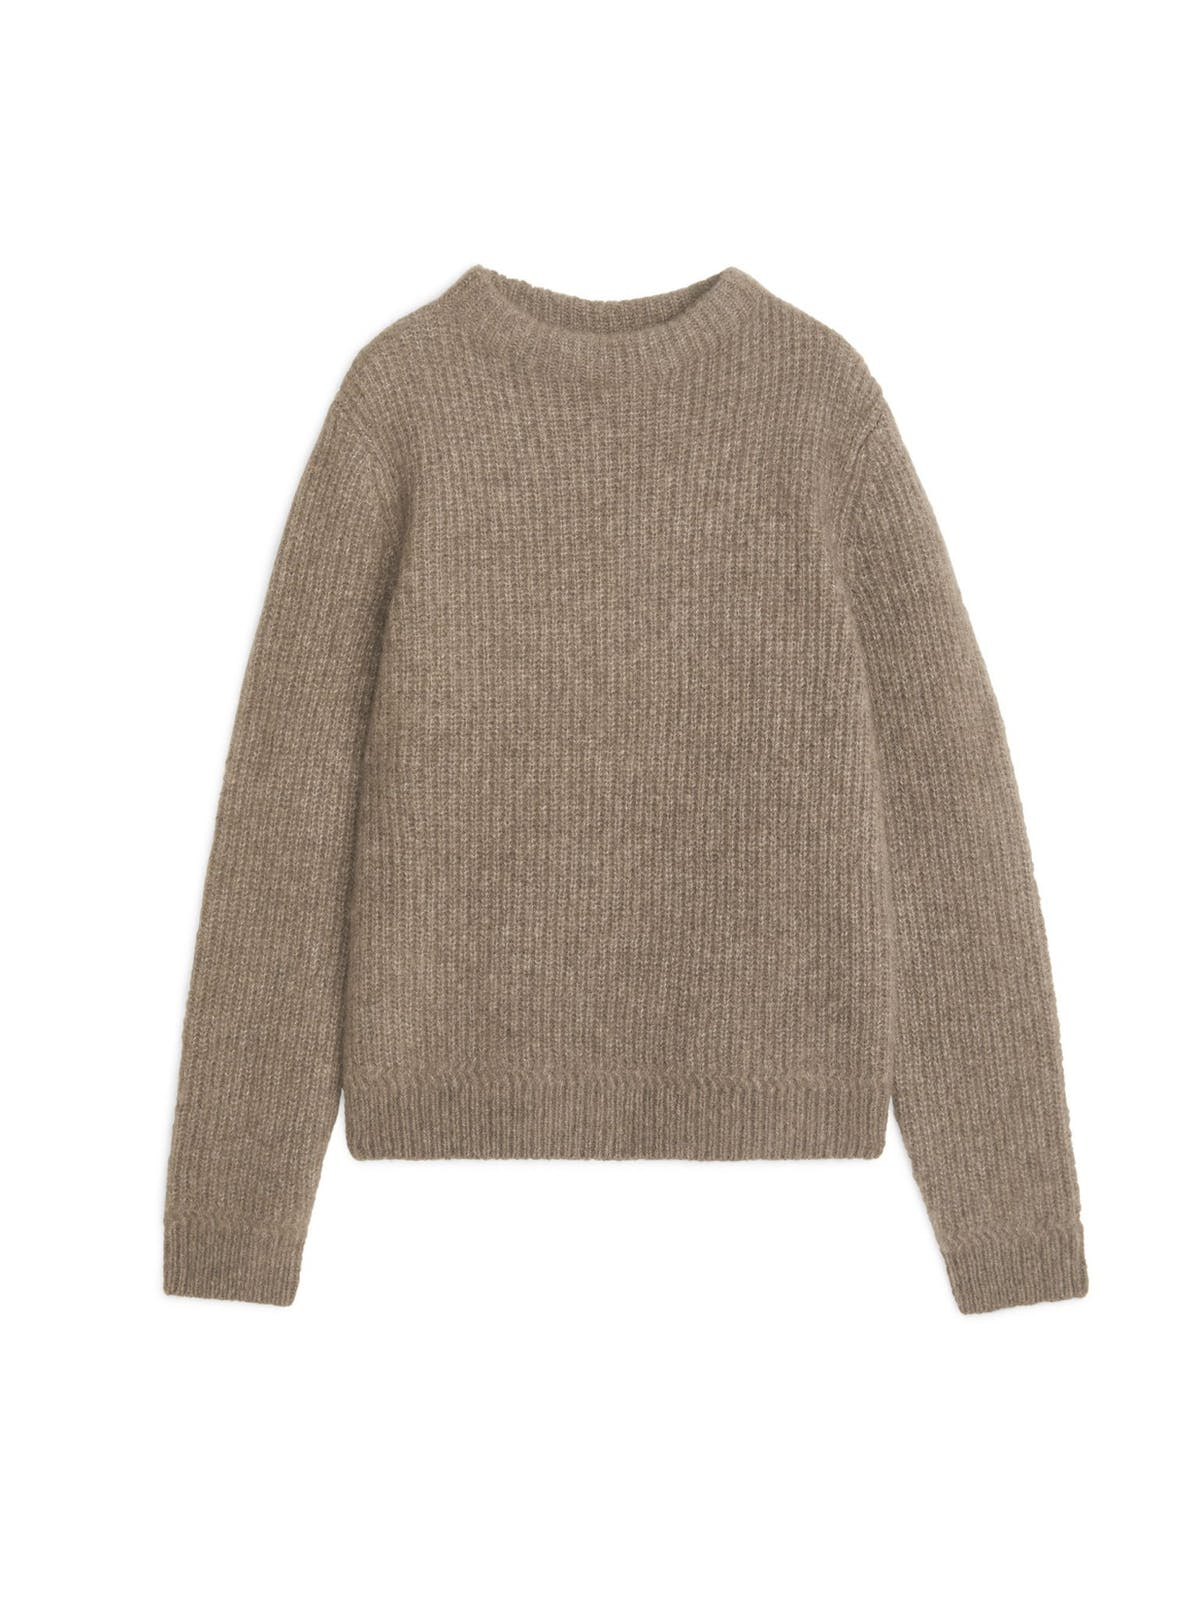 5cba1d95590f Christmas gift guide  21 of the cosiest jumpers